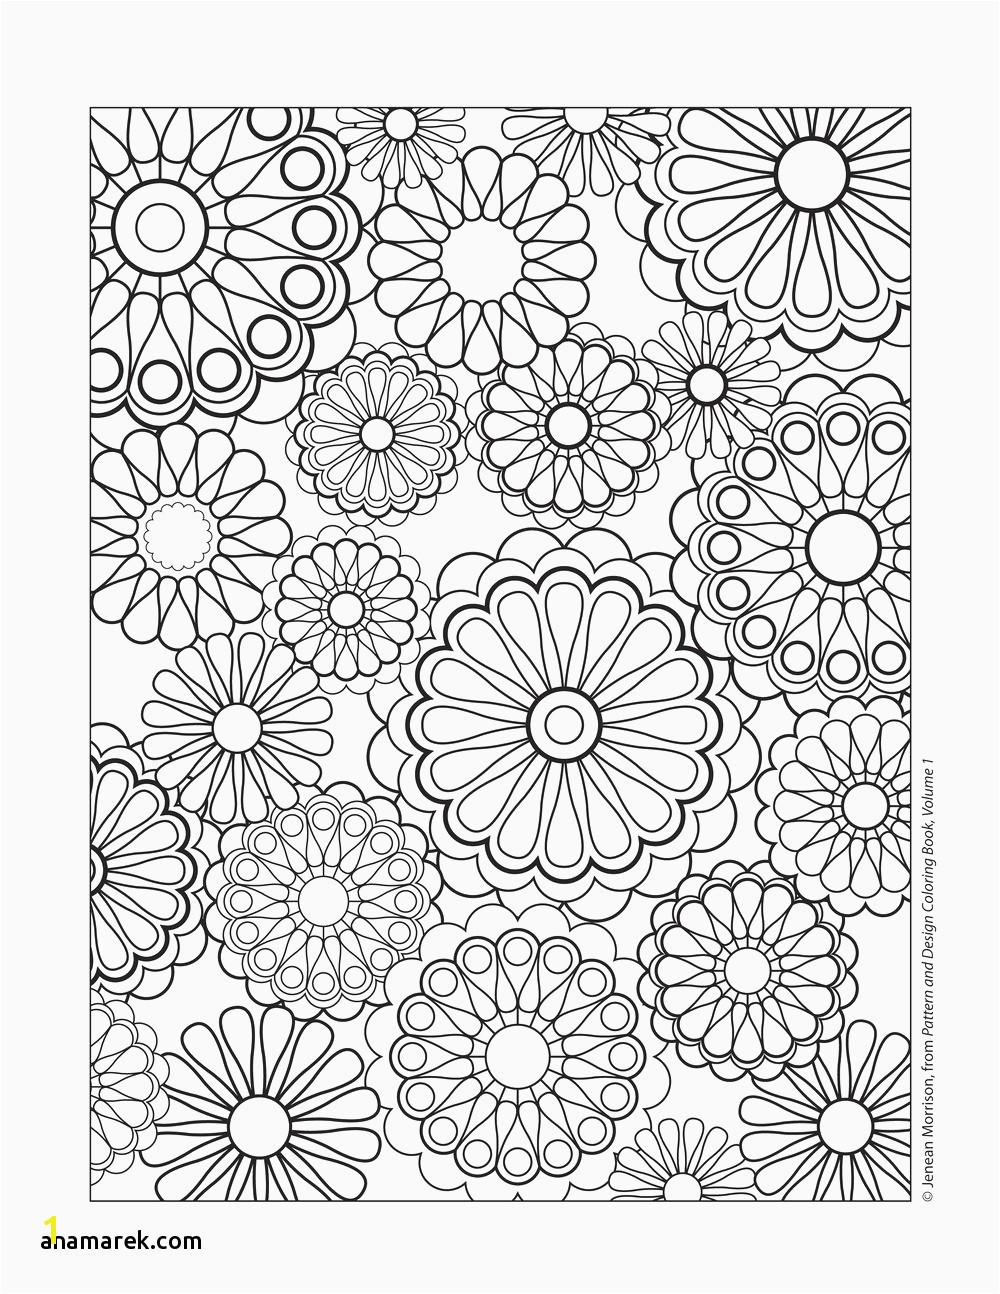 Printable Coloring Book For Adults Free Elegant Cool Od Dog Coloringadult Printable Coloring Pages